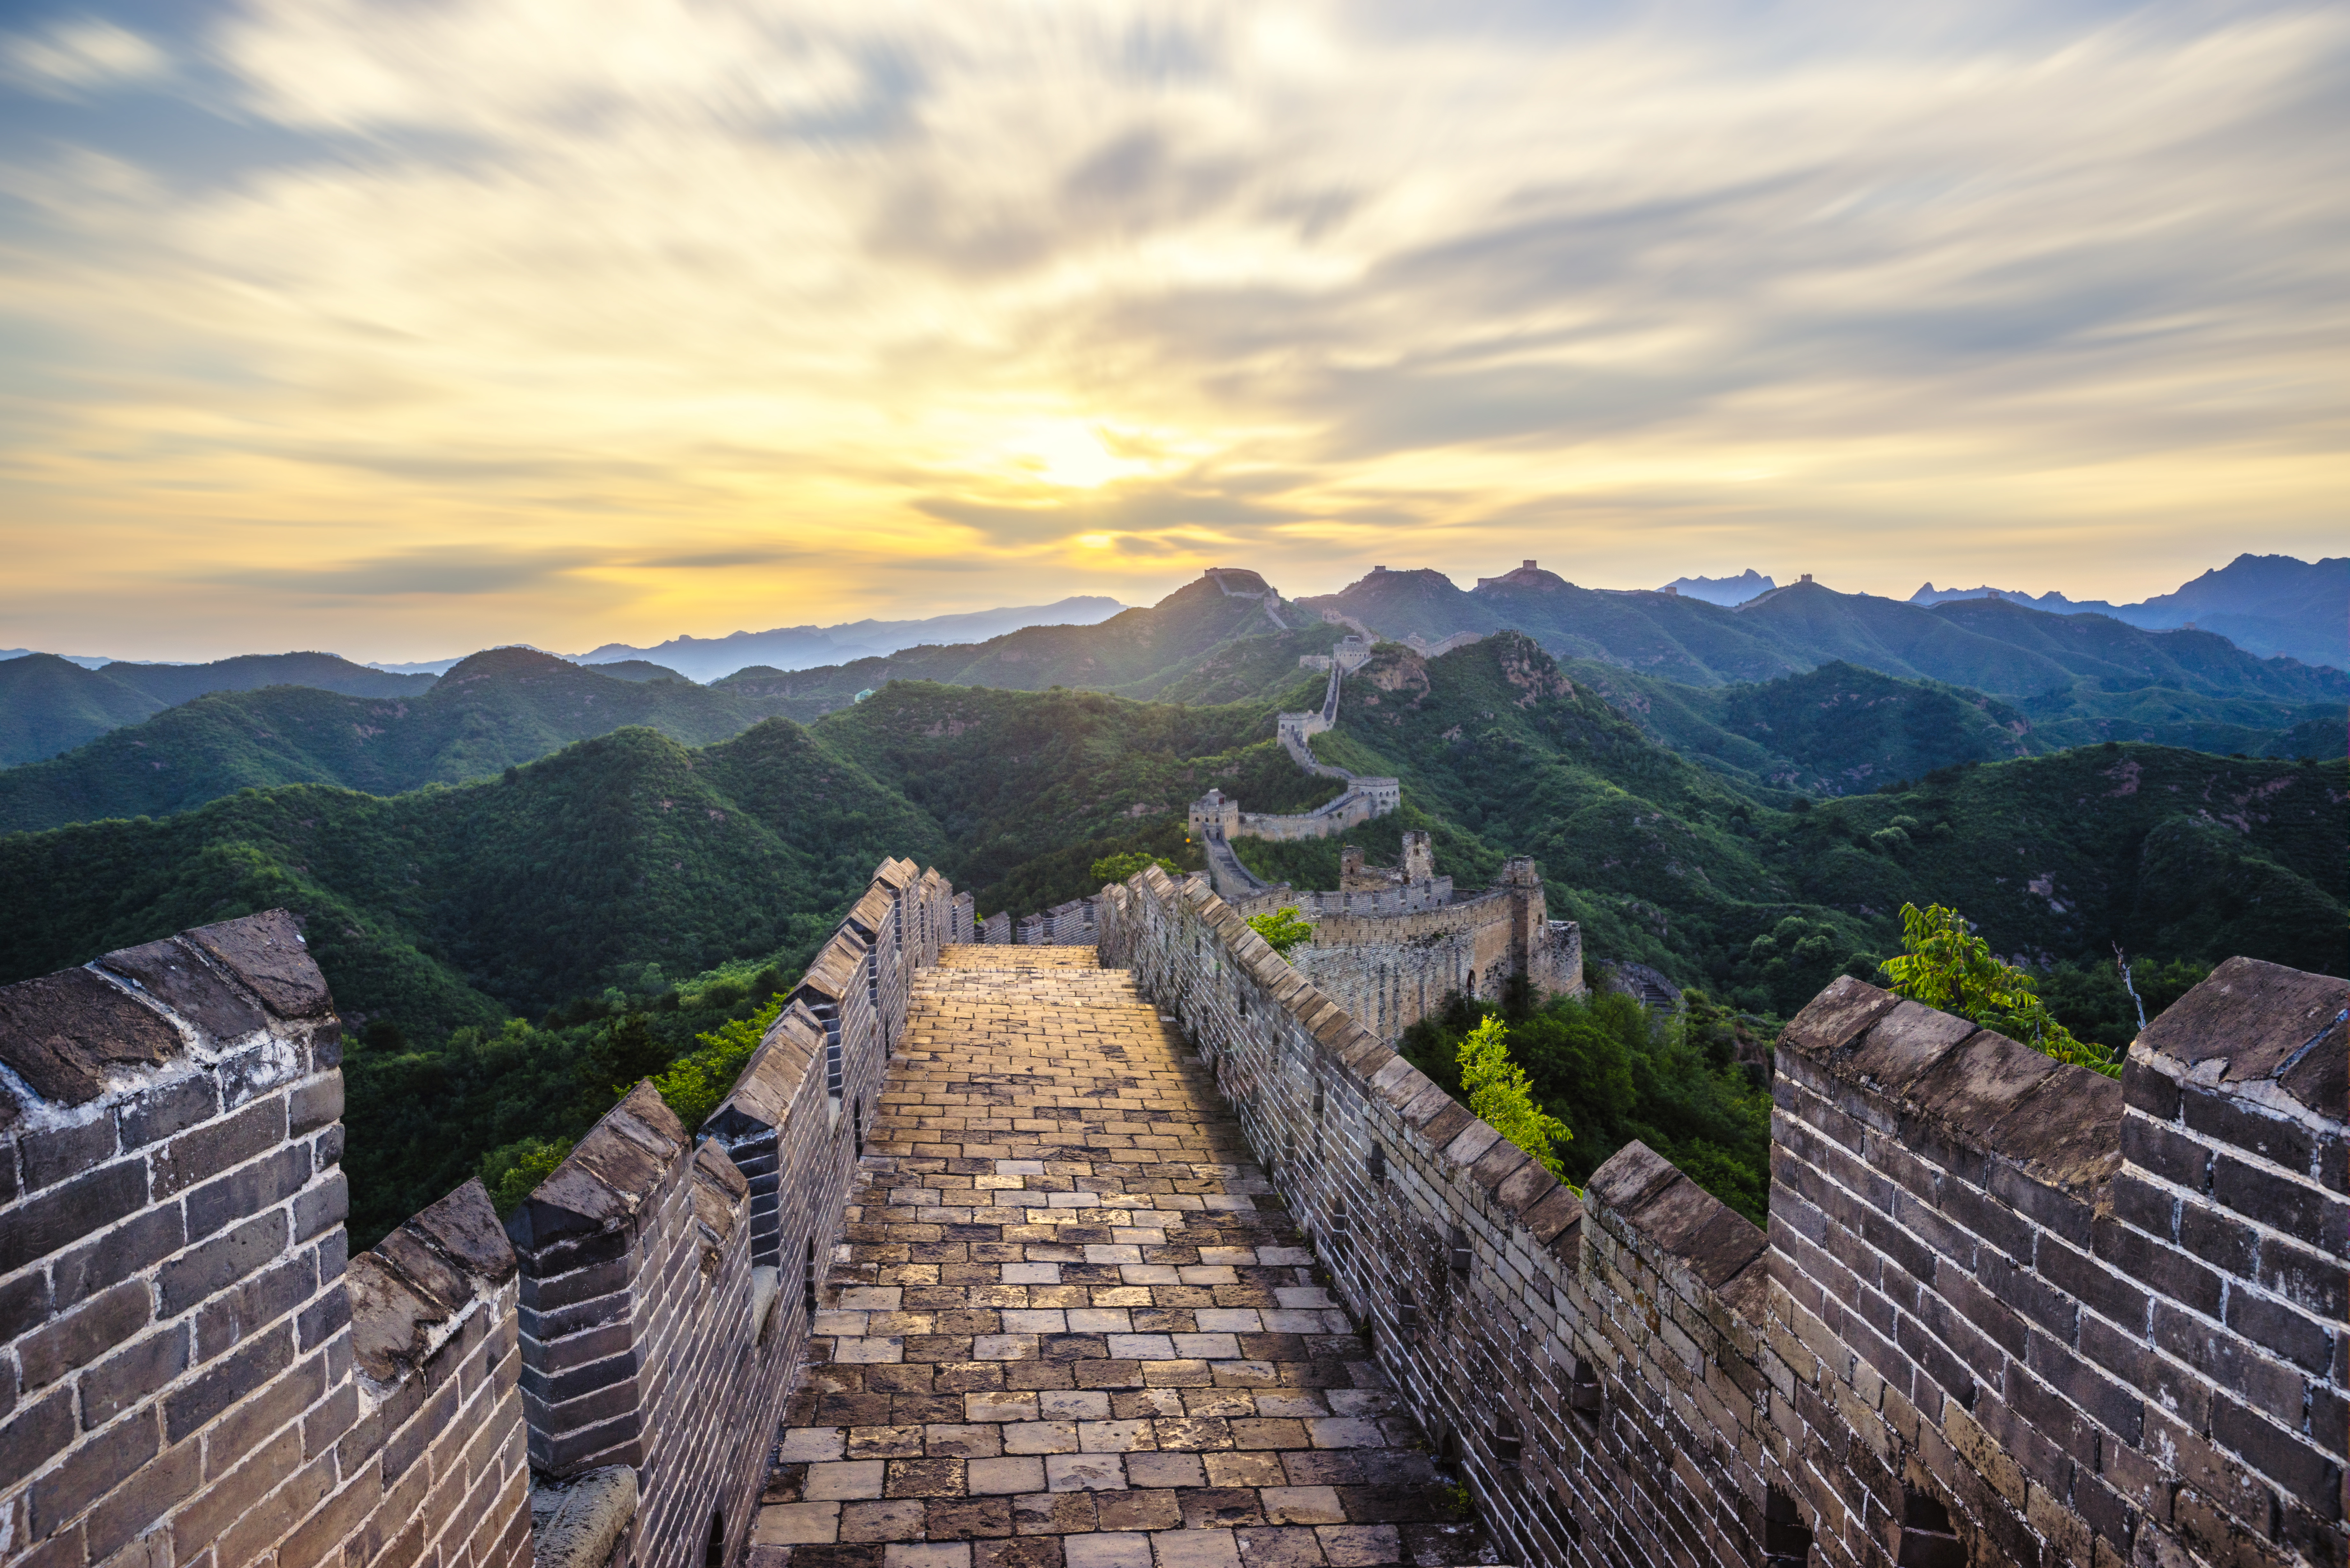 Summer Program - Entrepreneurship | CIEE High School Summer Abroad in Beijing, China - Building a Sustainable Mega City